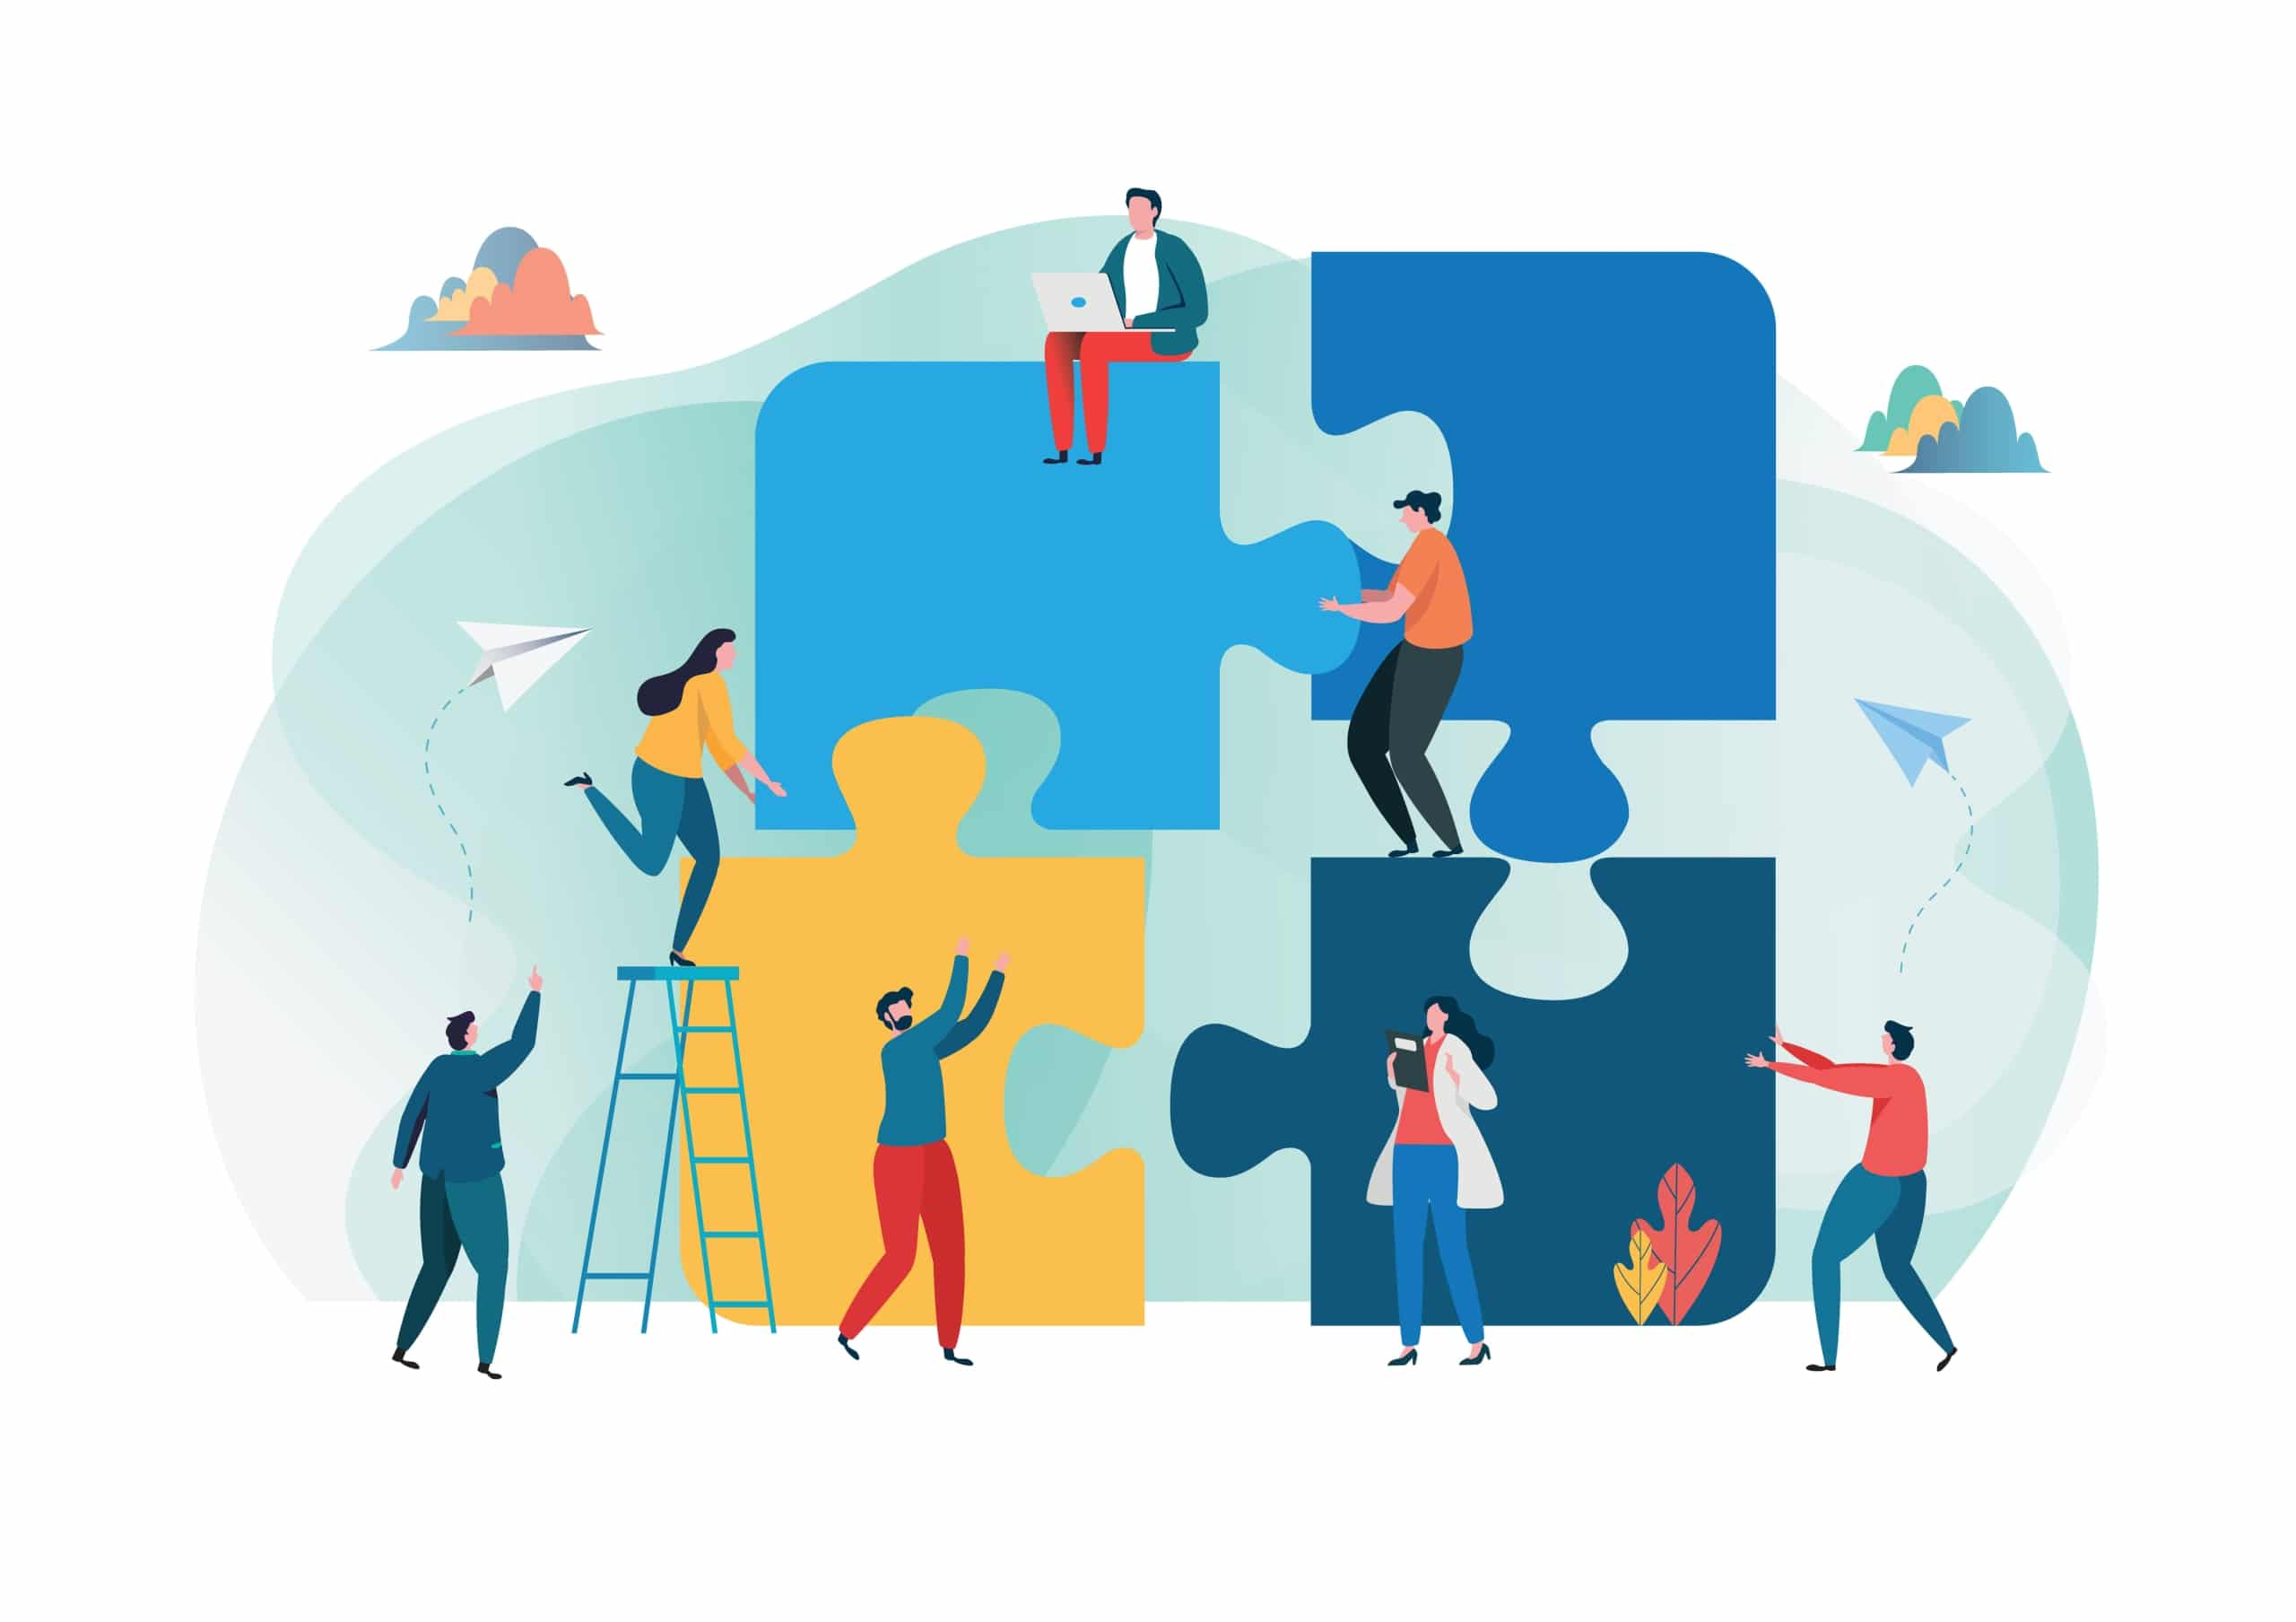 Illustration of men and women working together to make a puzzle demonstrating teamwork